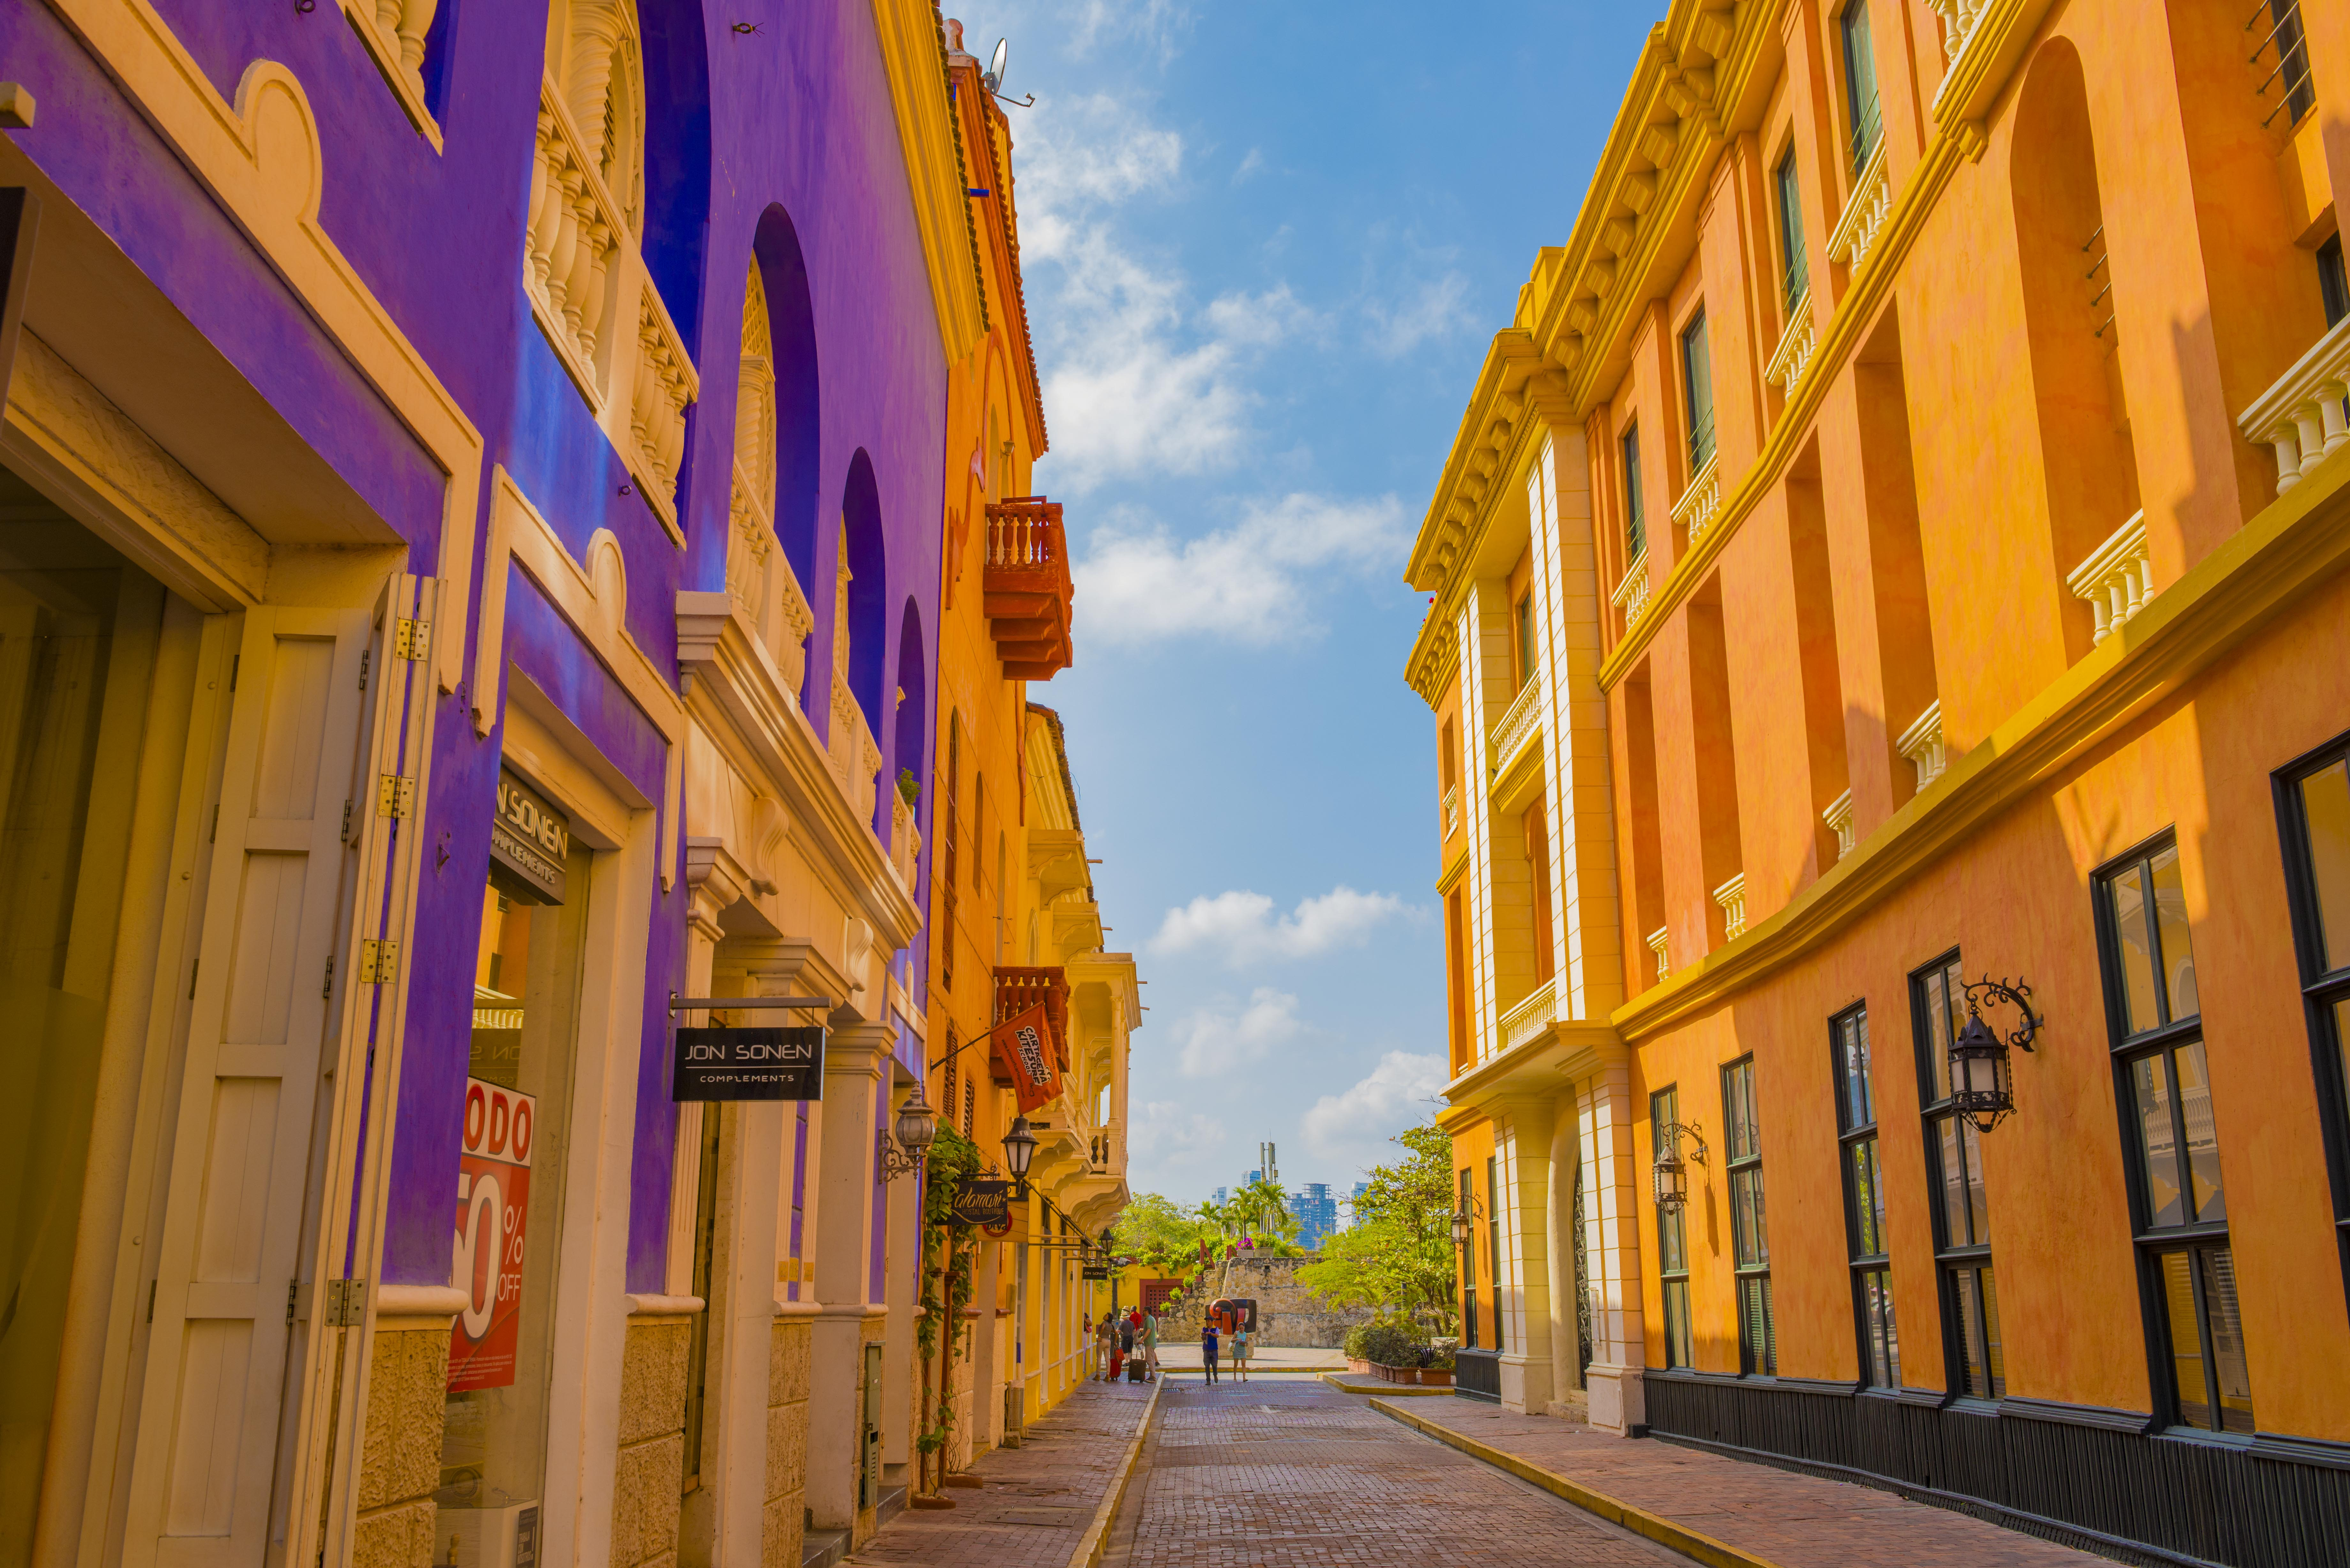 Old town Cartagena, Bolivar, Photographed by Tom Till